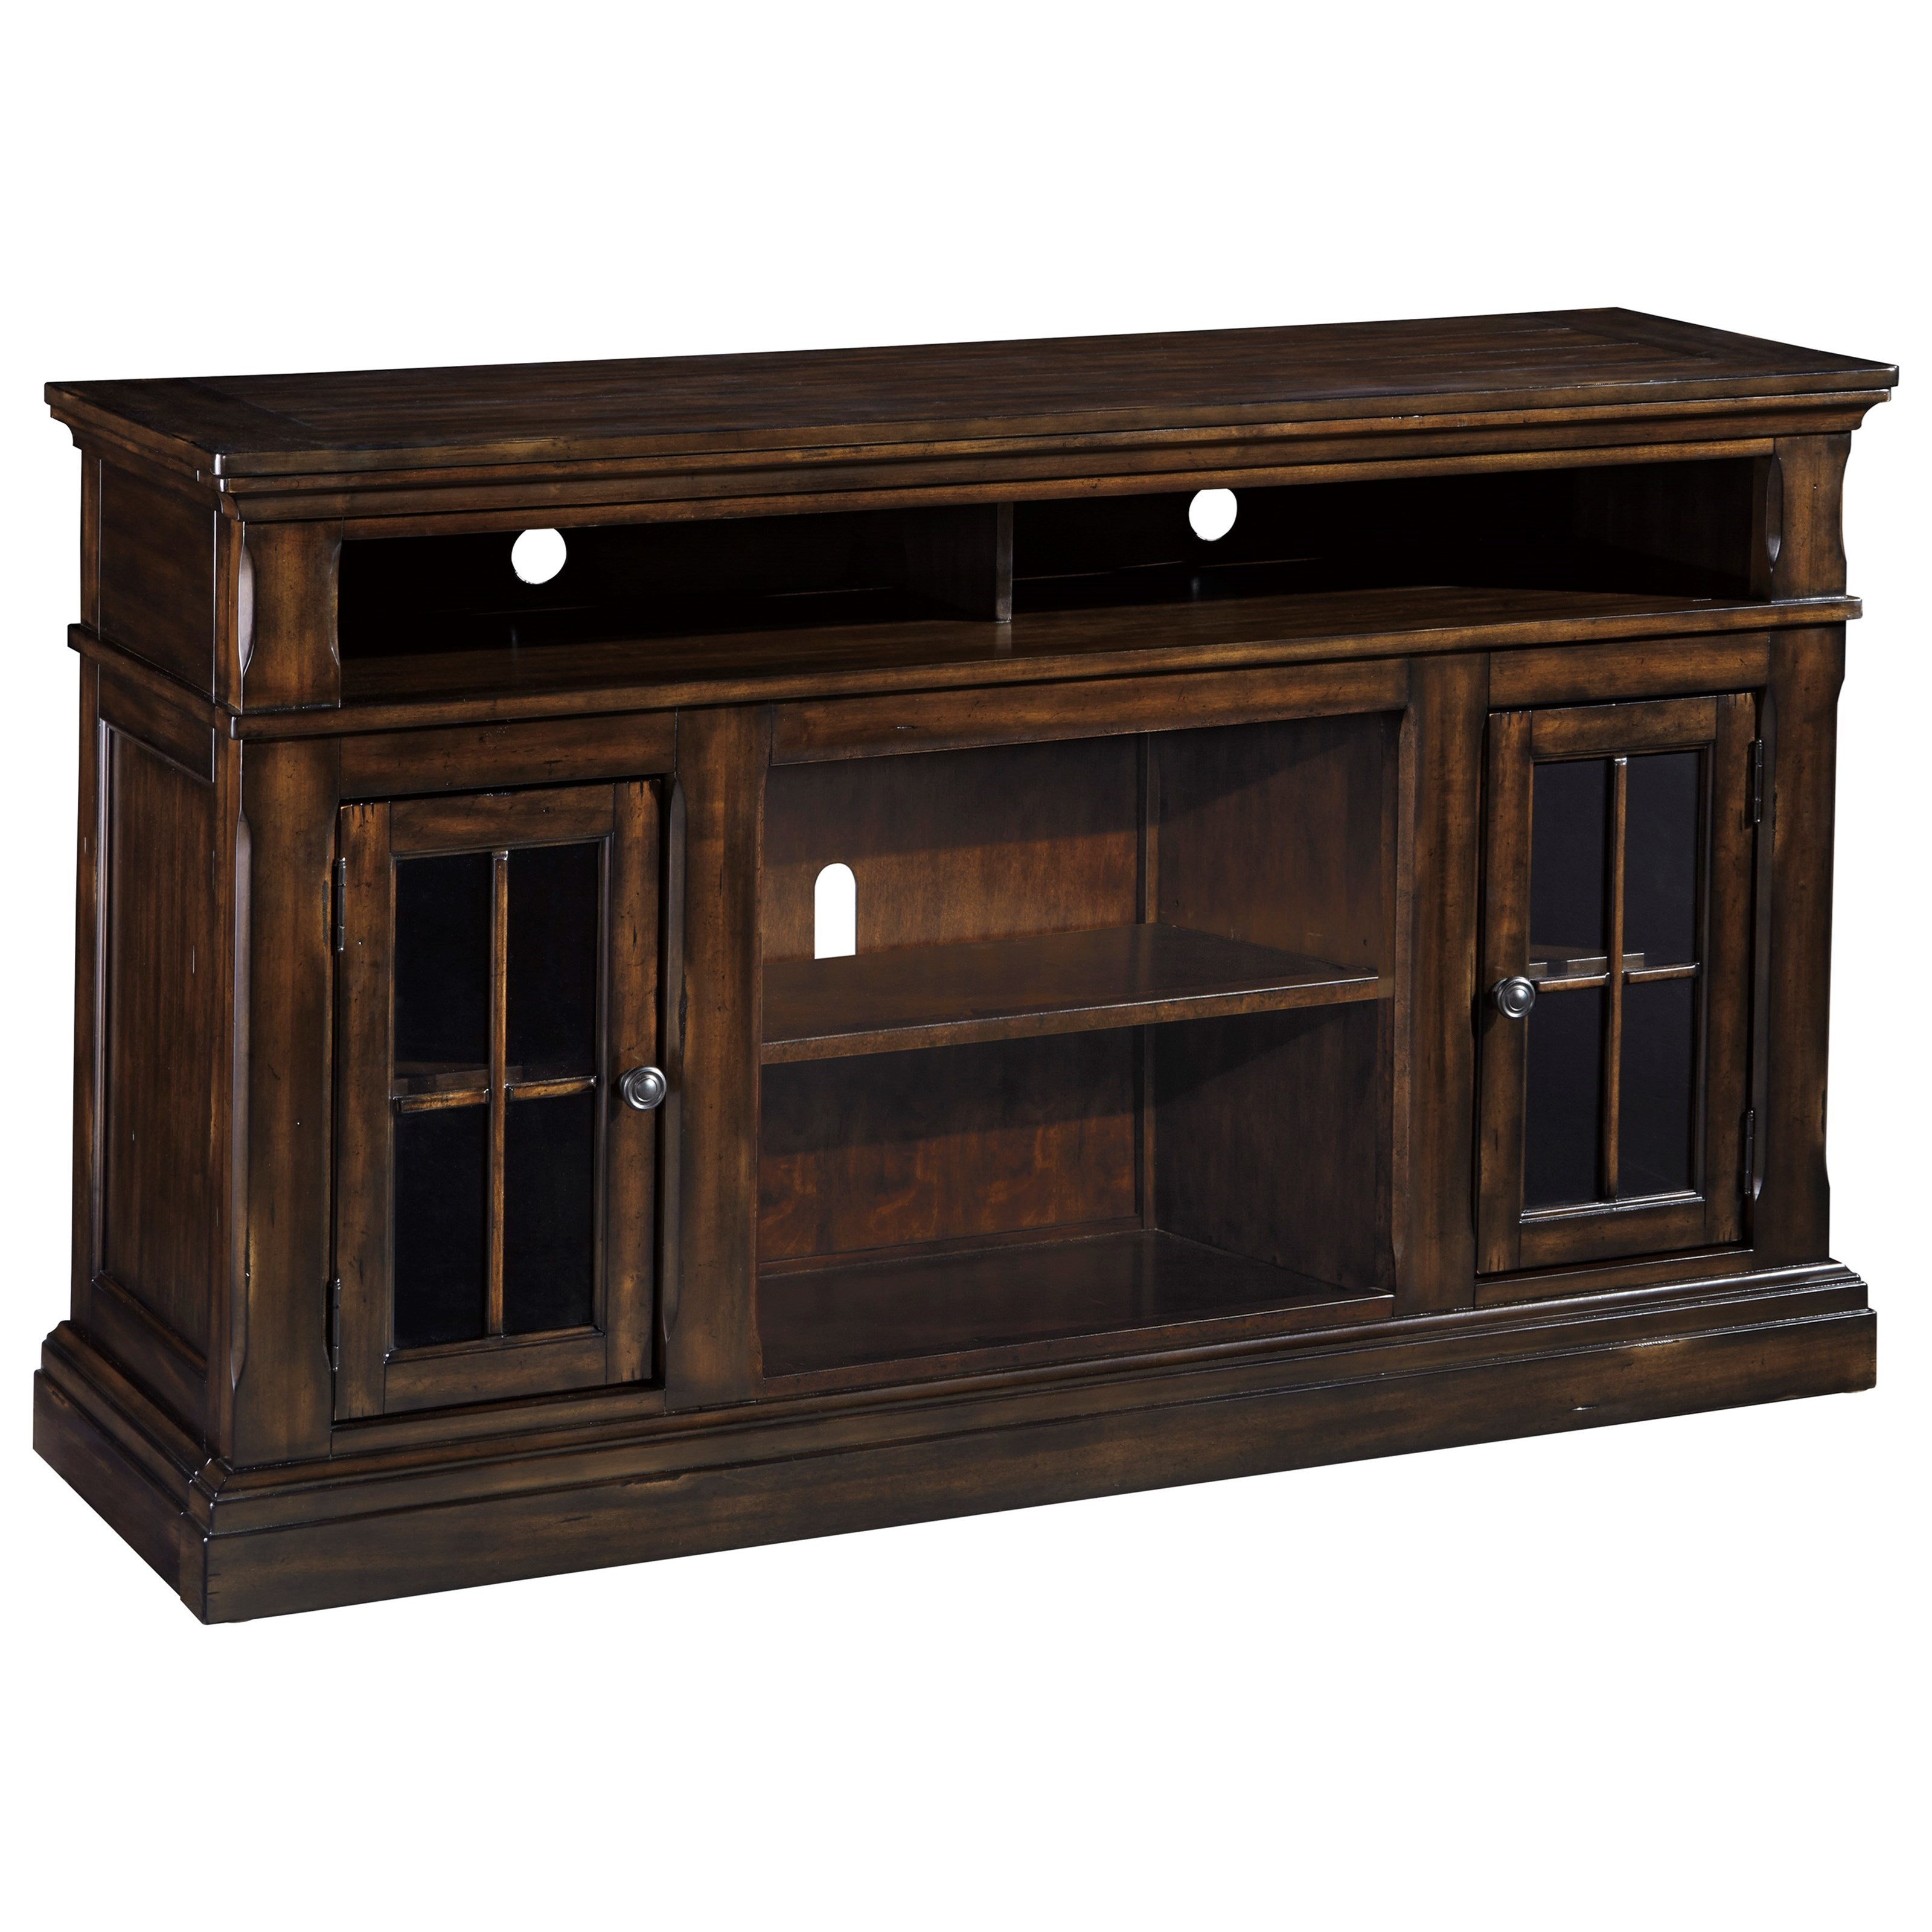 Ashley Signature Design Roddinton W701 58 Transitional Large Tv Stand With 2 Glass Doors Dunk